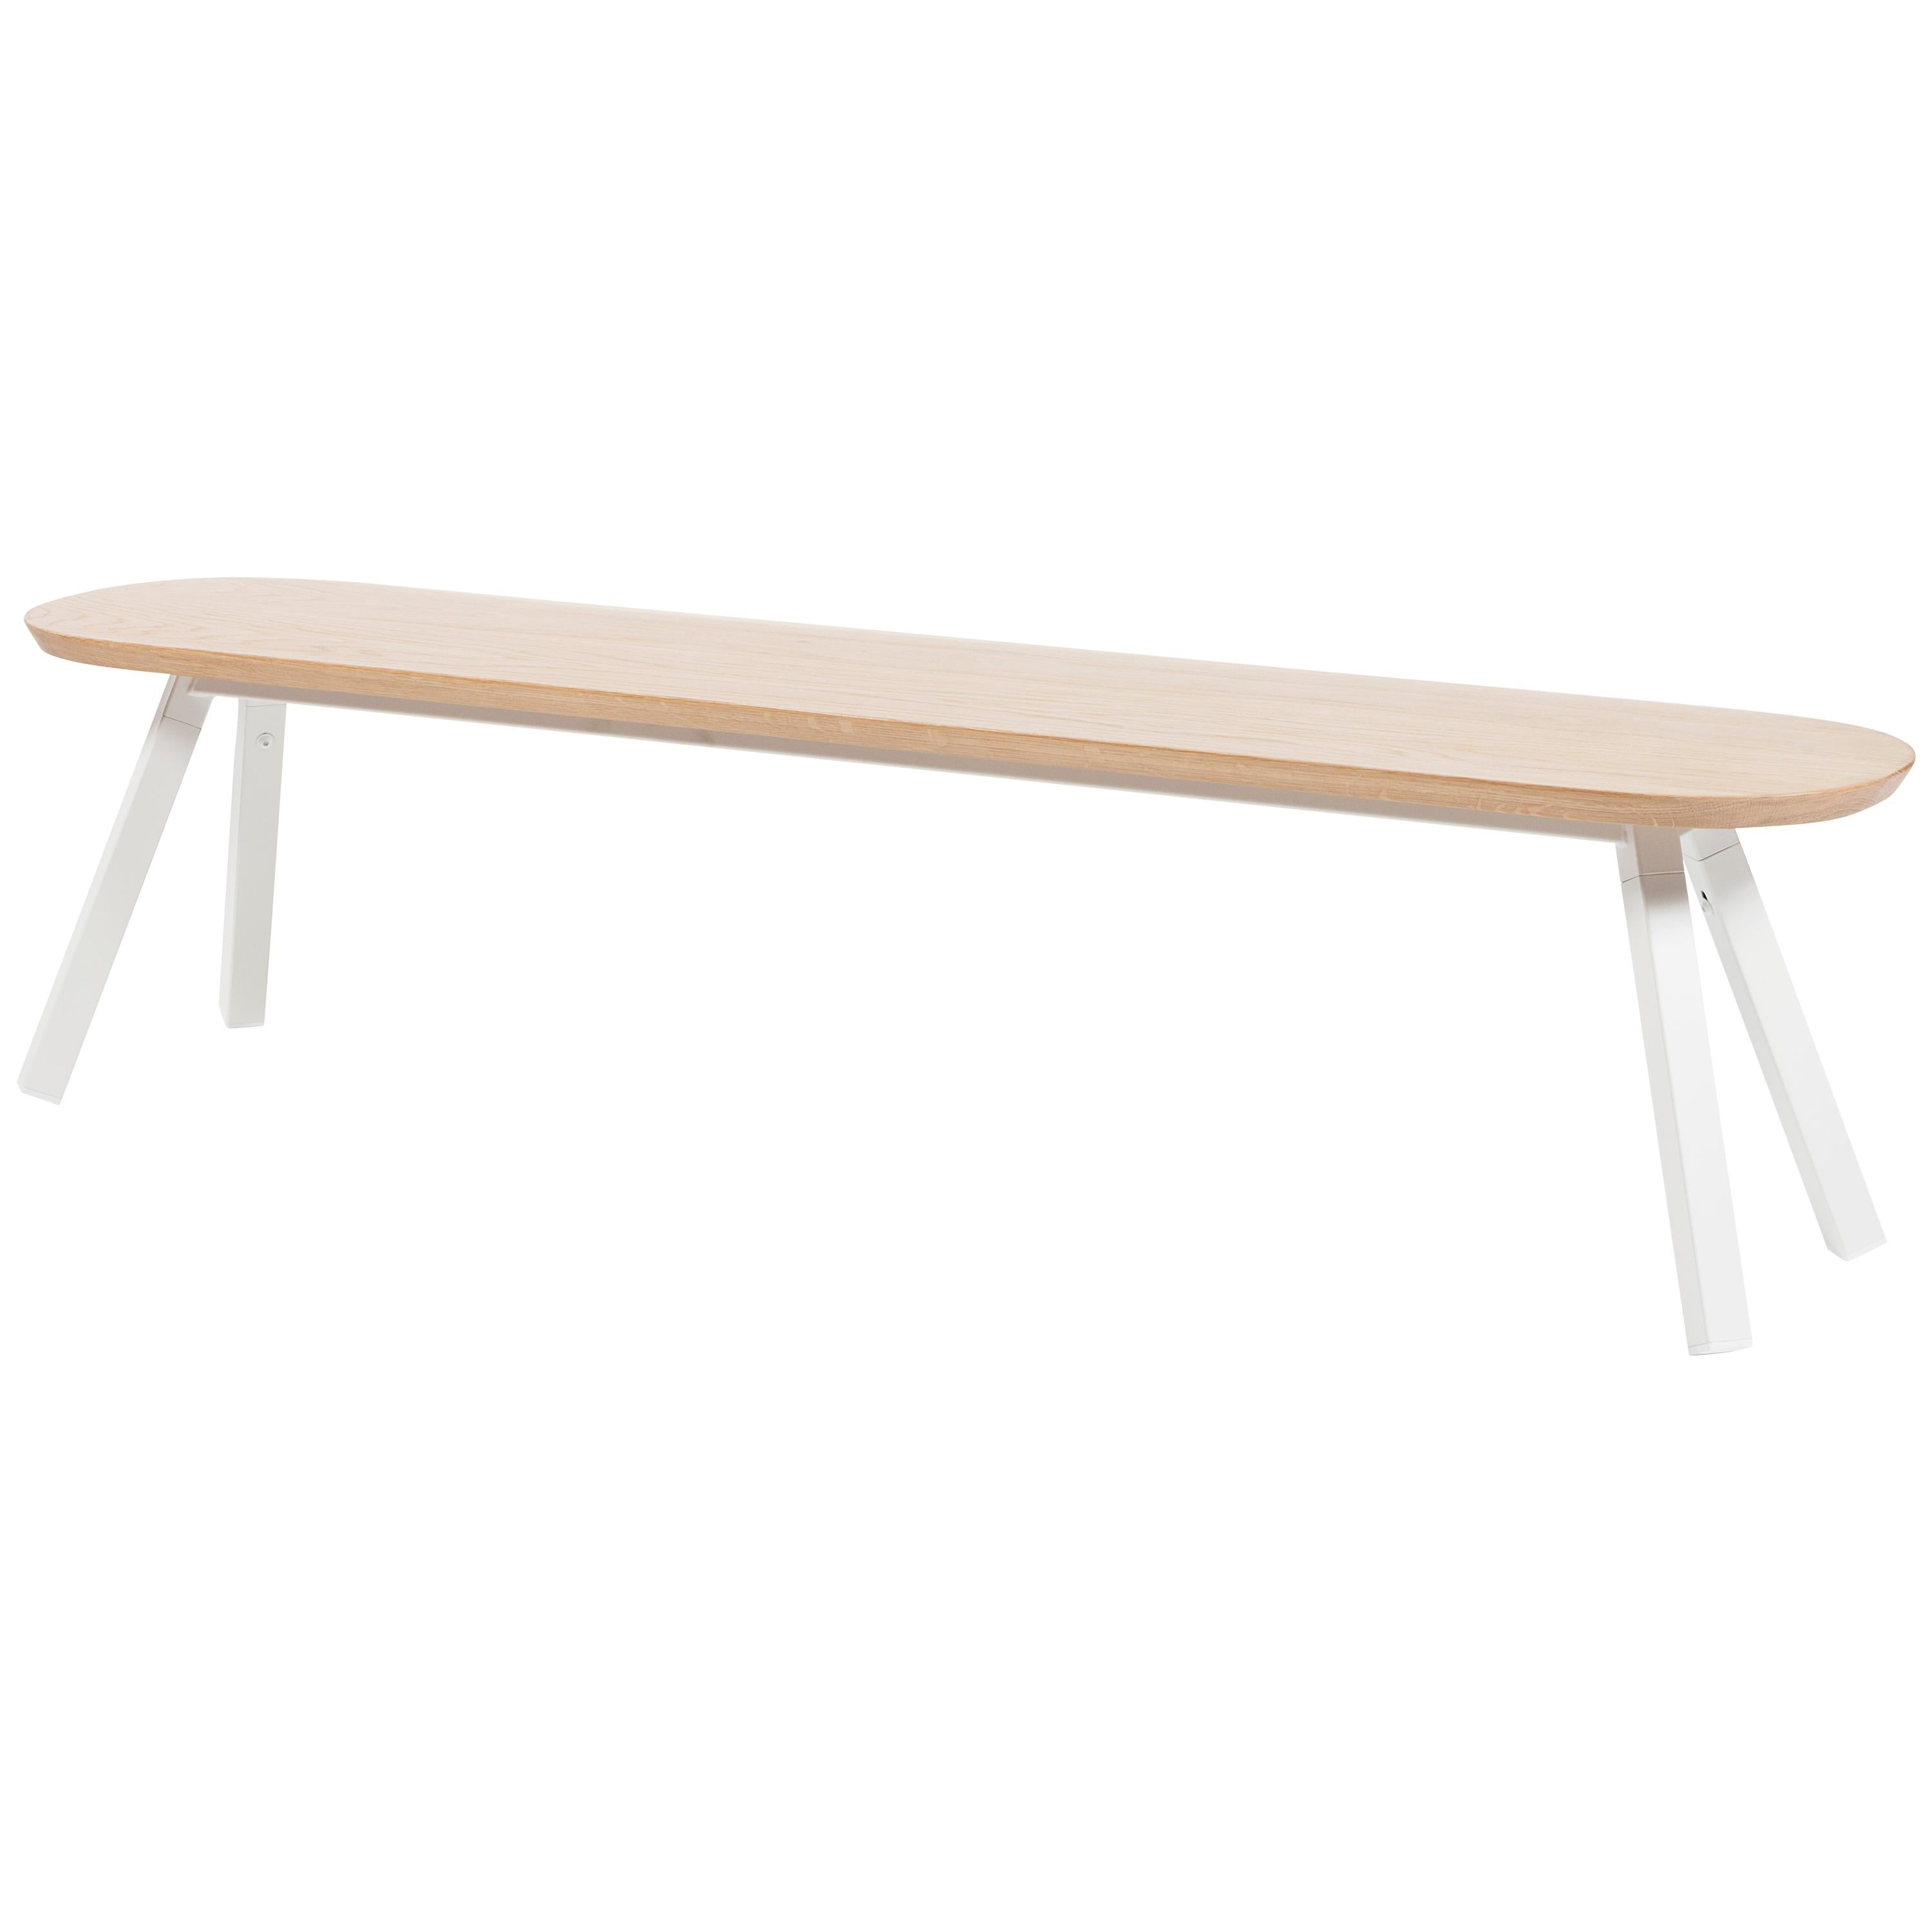 RS Barcelona You and Me 180 Bench in Oak with White Legs by A.P.O.